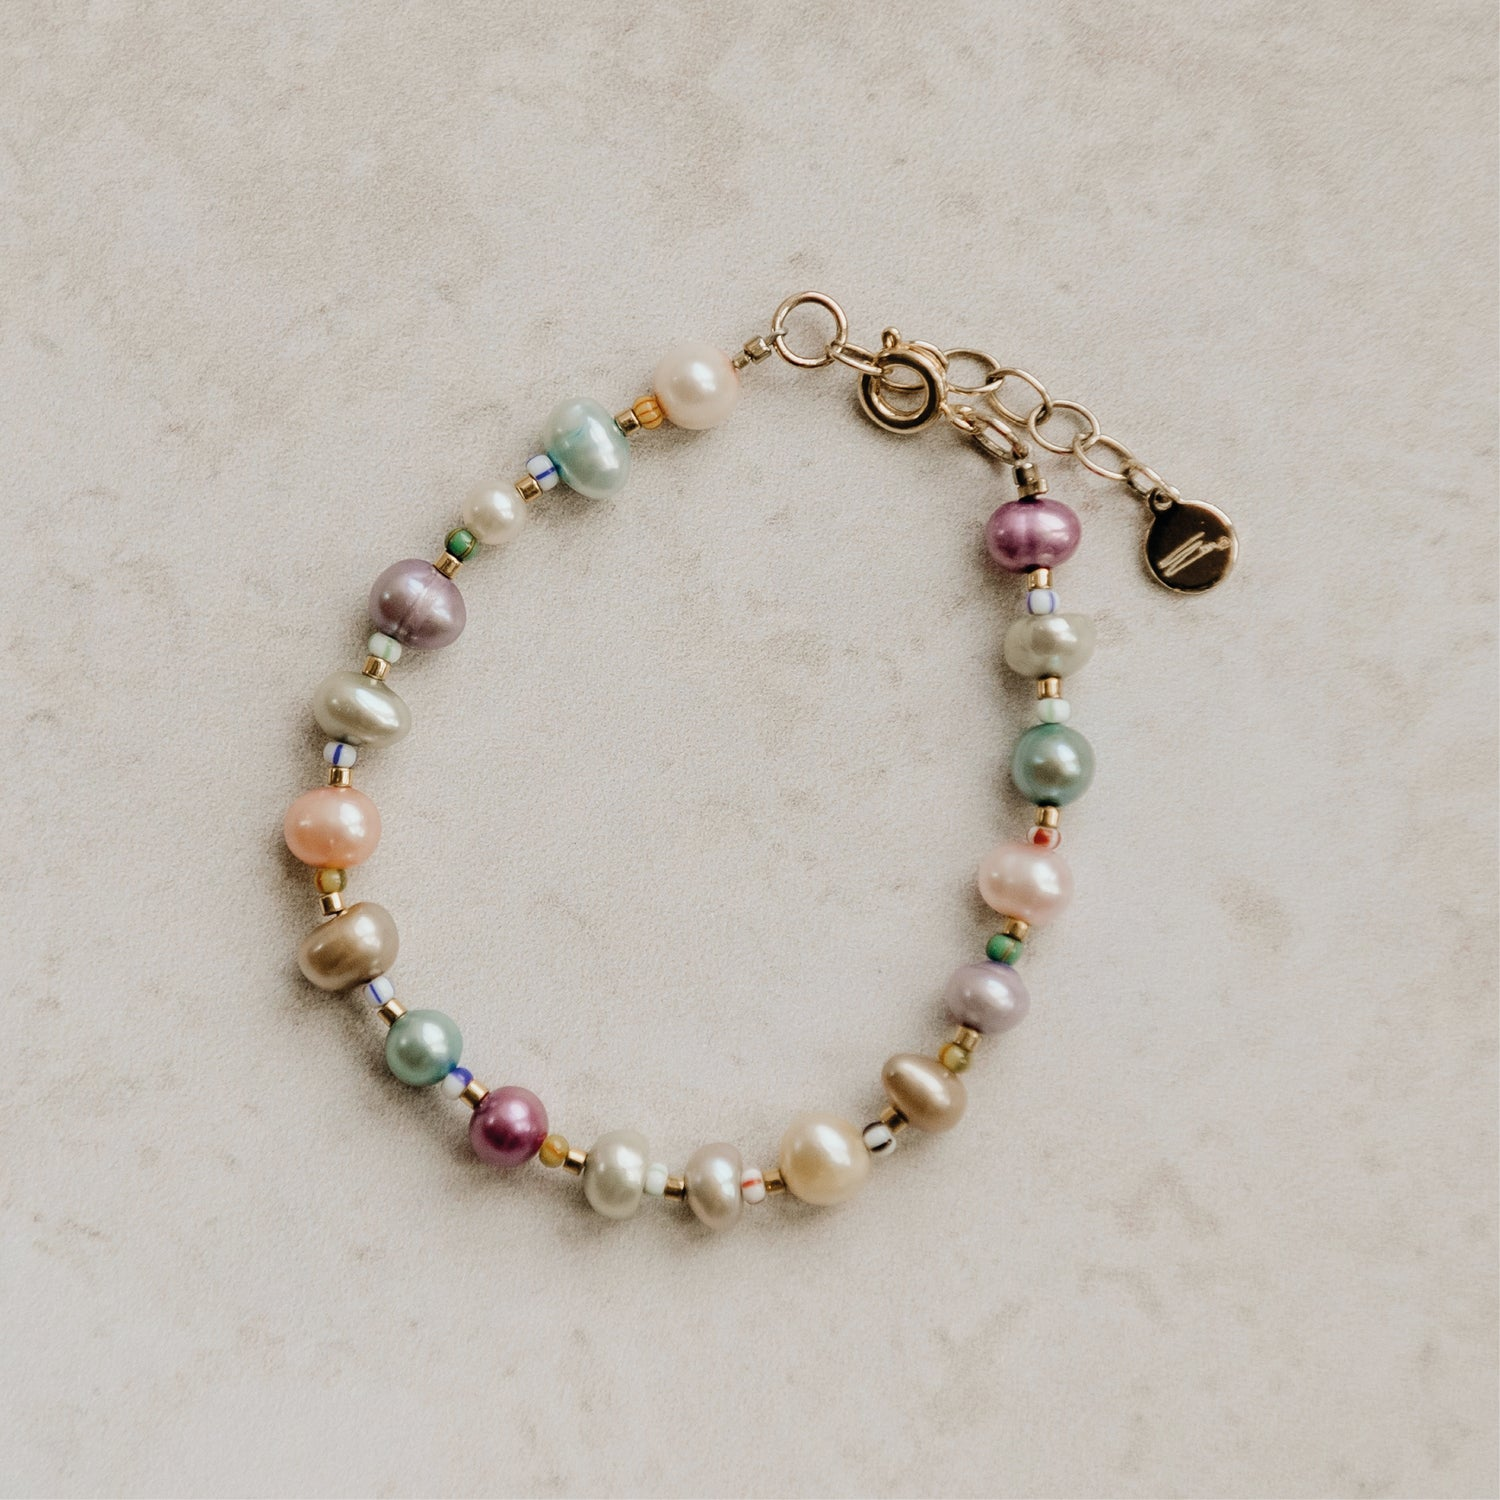 Image of Mum & Daughter Connect Bracelet